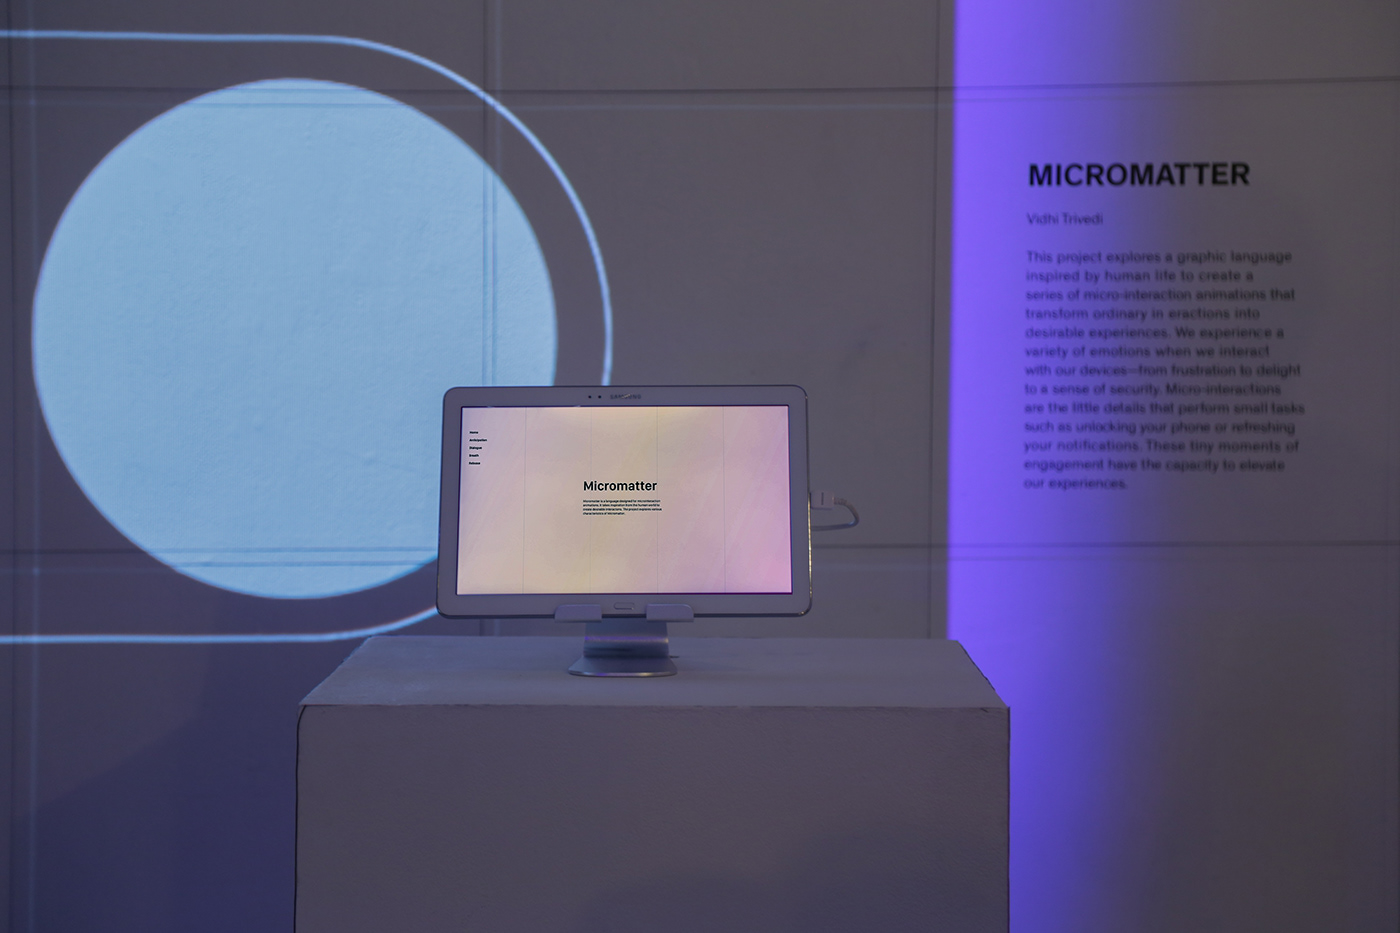 adobeawards experience design UI/UX Microinteractions digital design interaction loaders language Exhibition  thesis